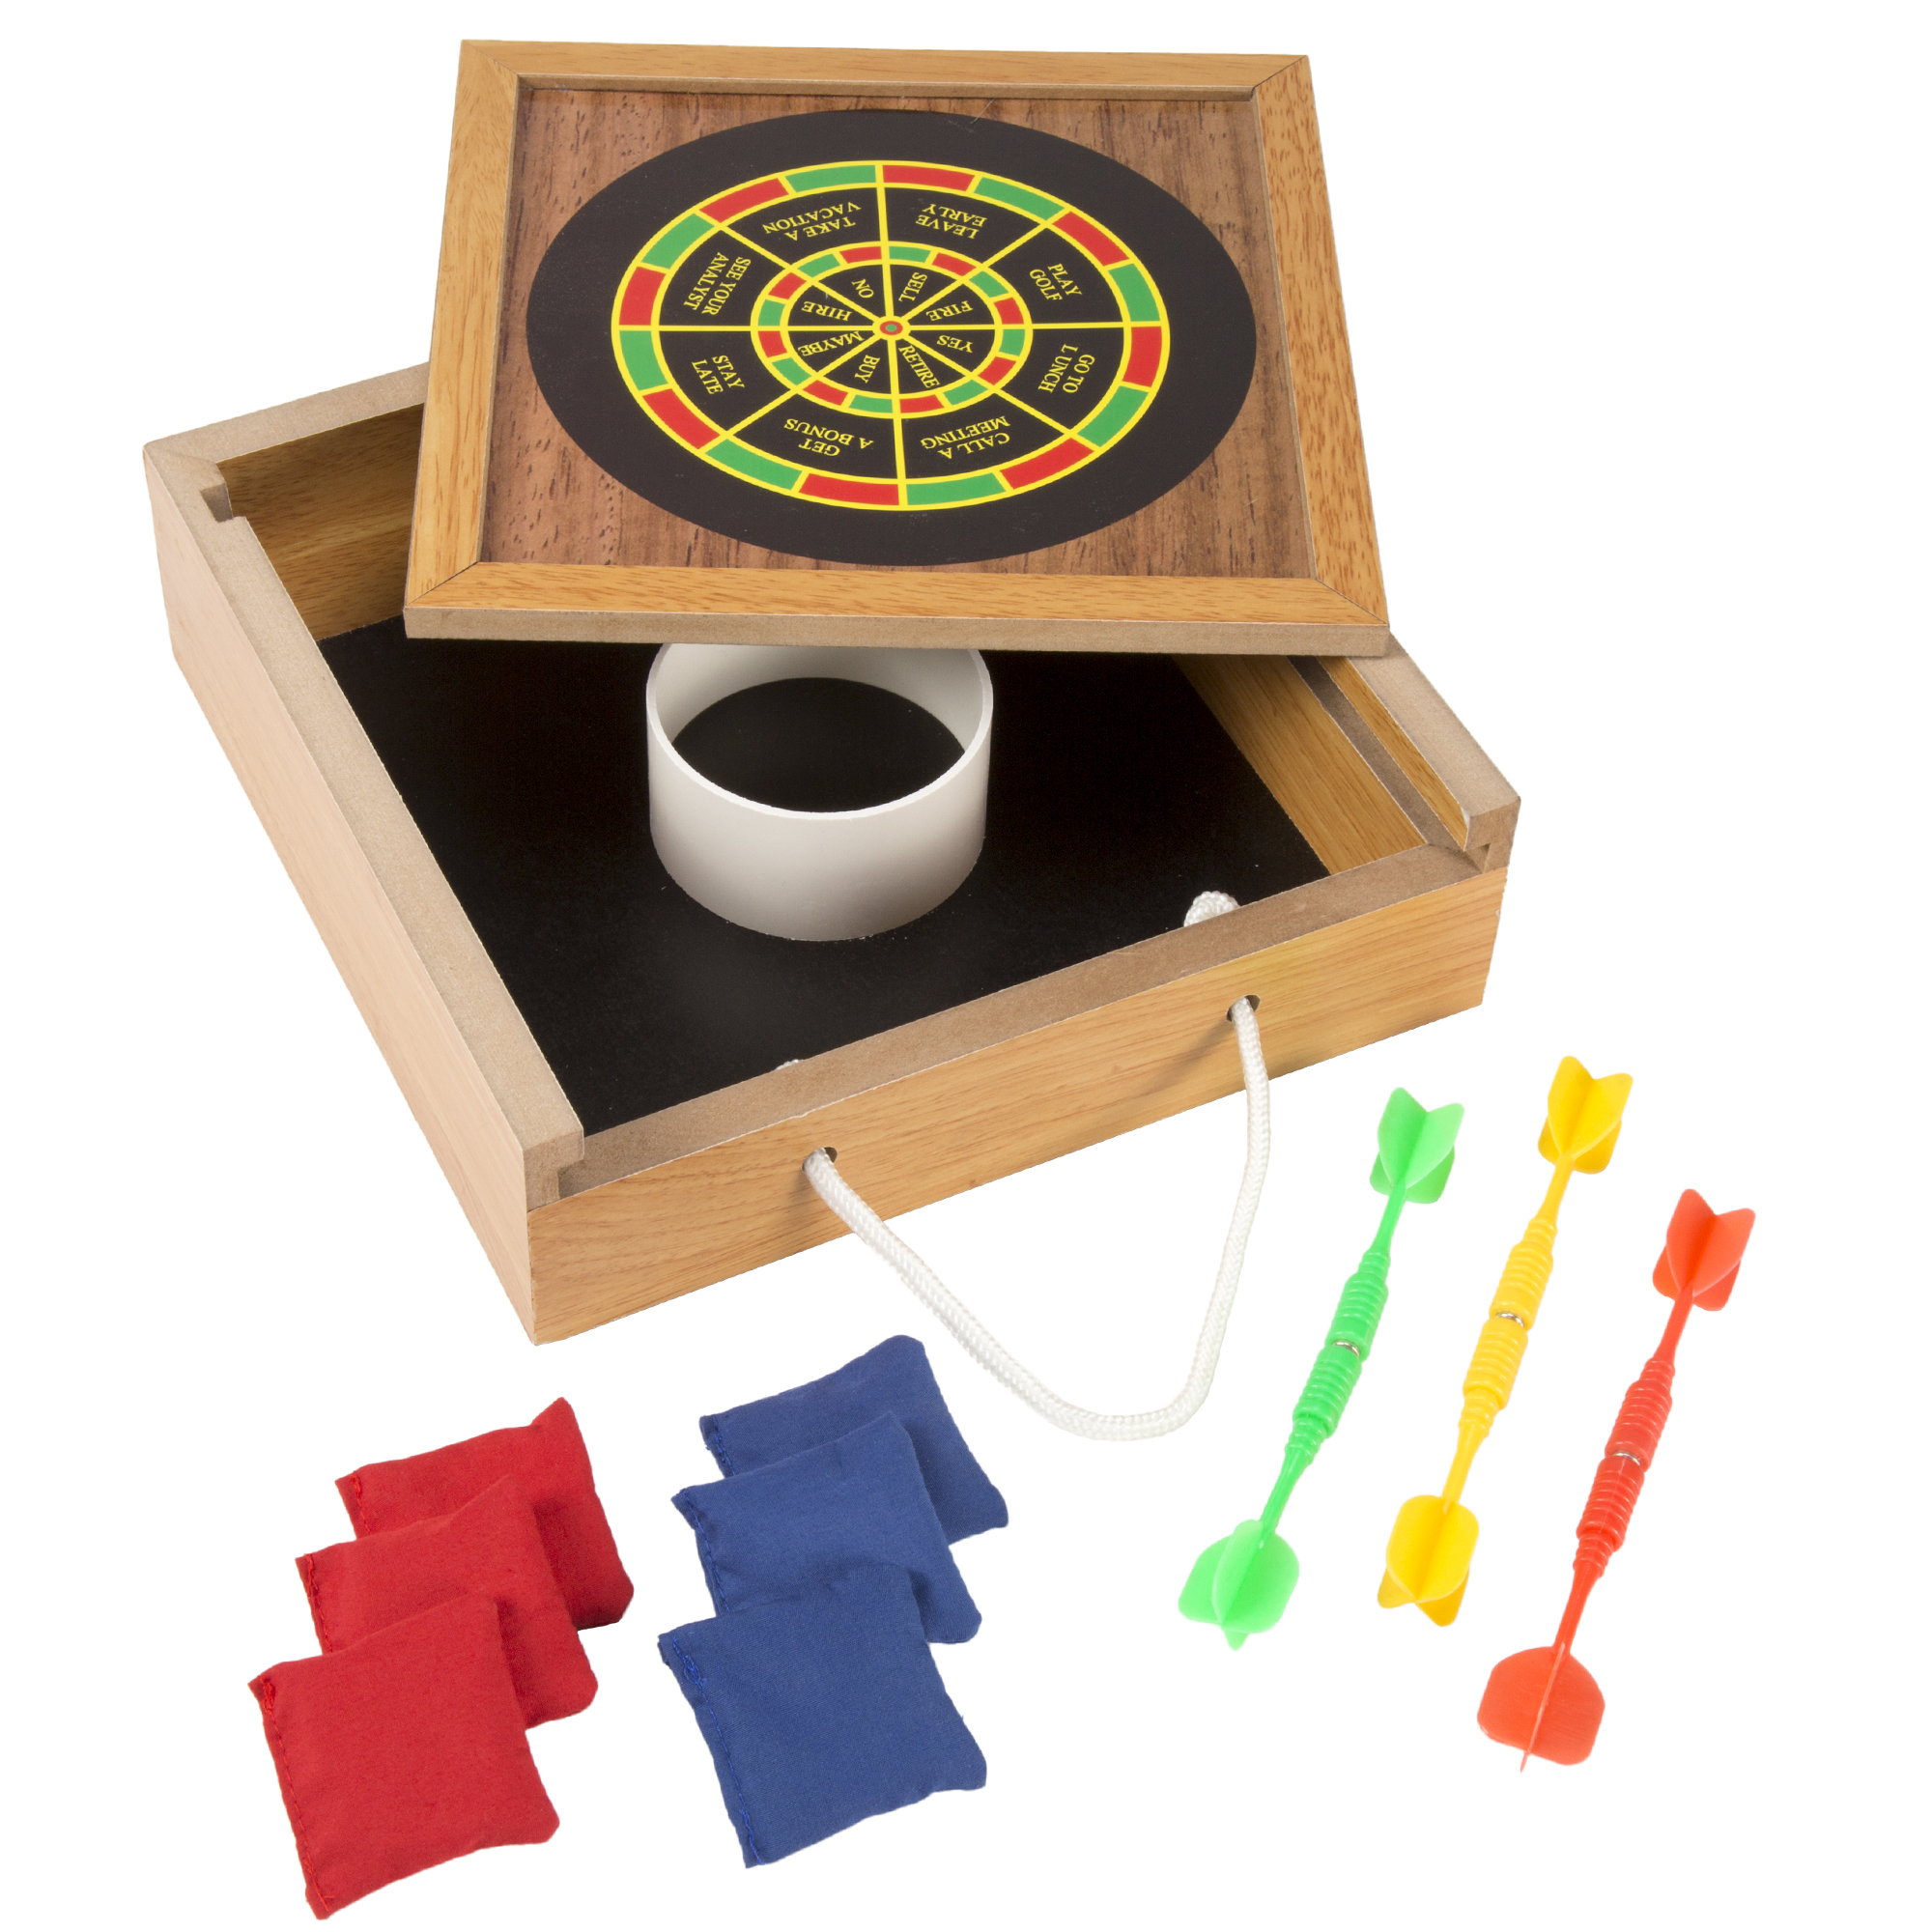 Tabletop Magnetic Dart and Beanbag Toss Set – Wooden Classic Miniature Party Games with Carrying Case for Kids and Adults by Hey! Play!